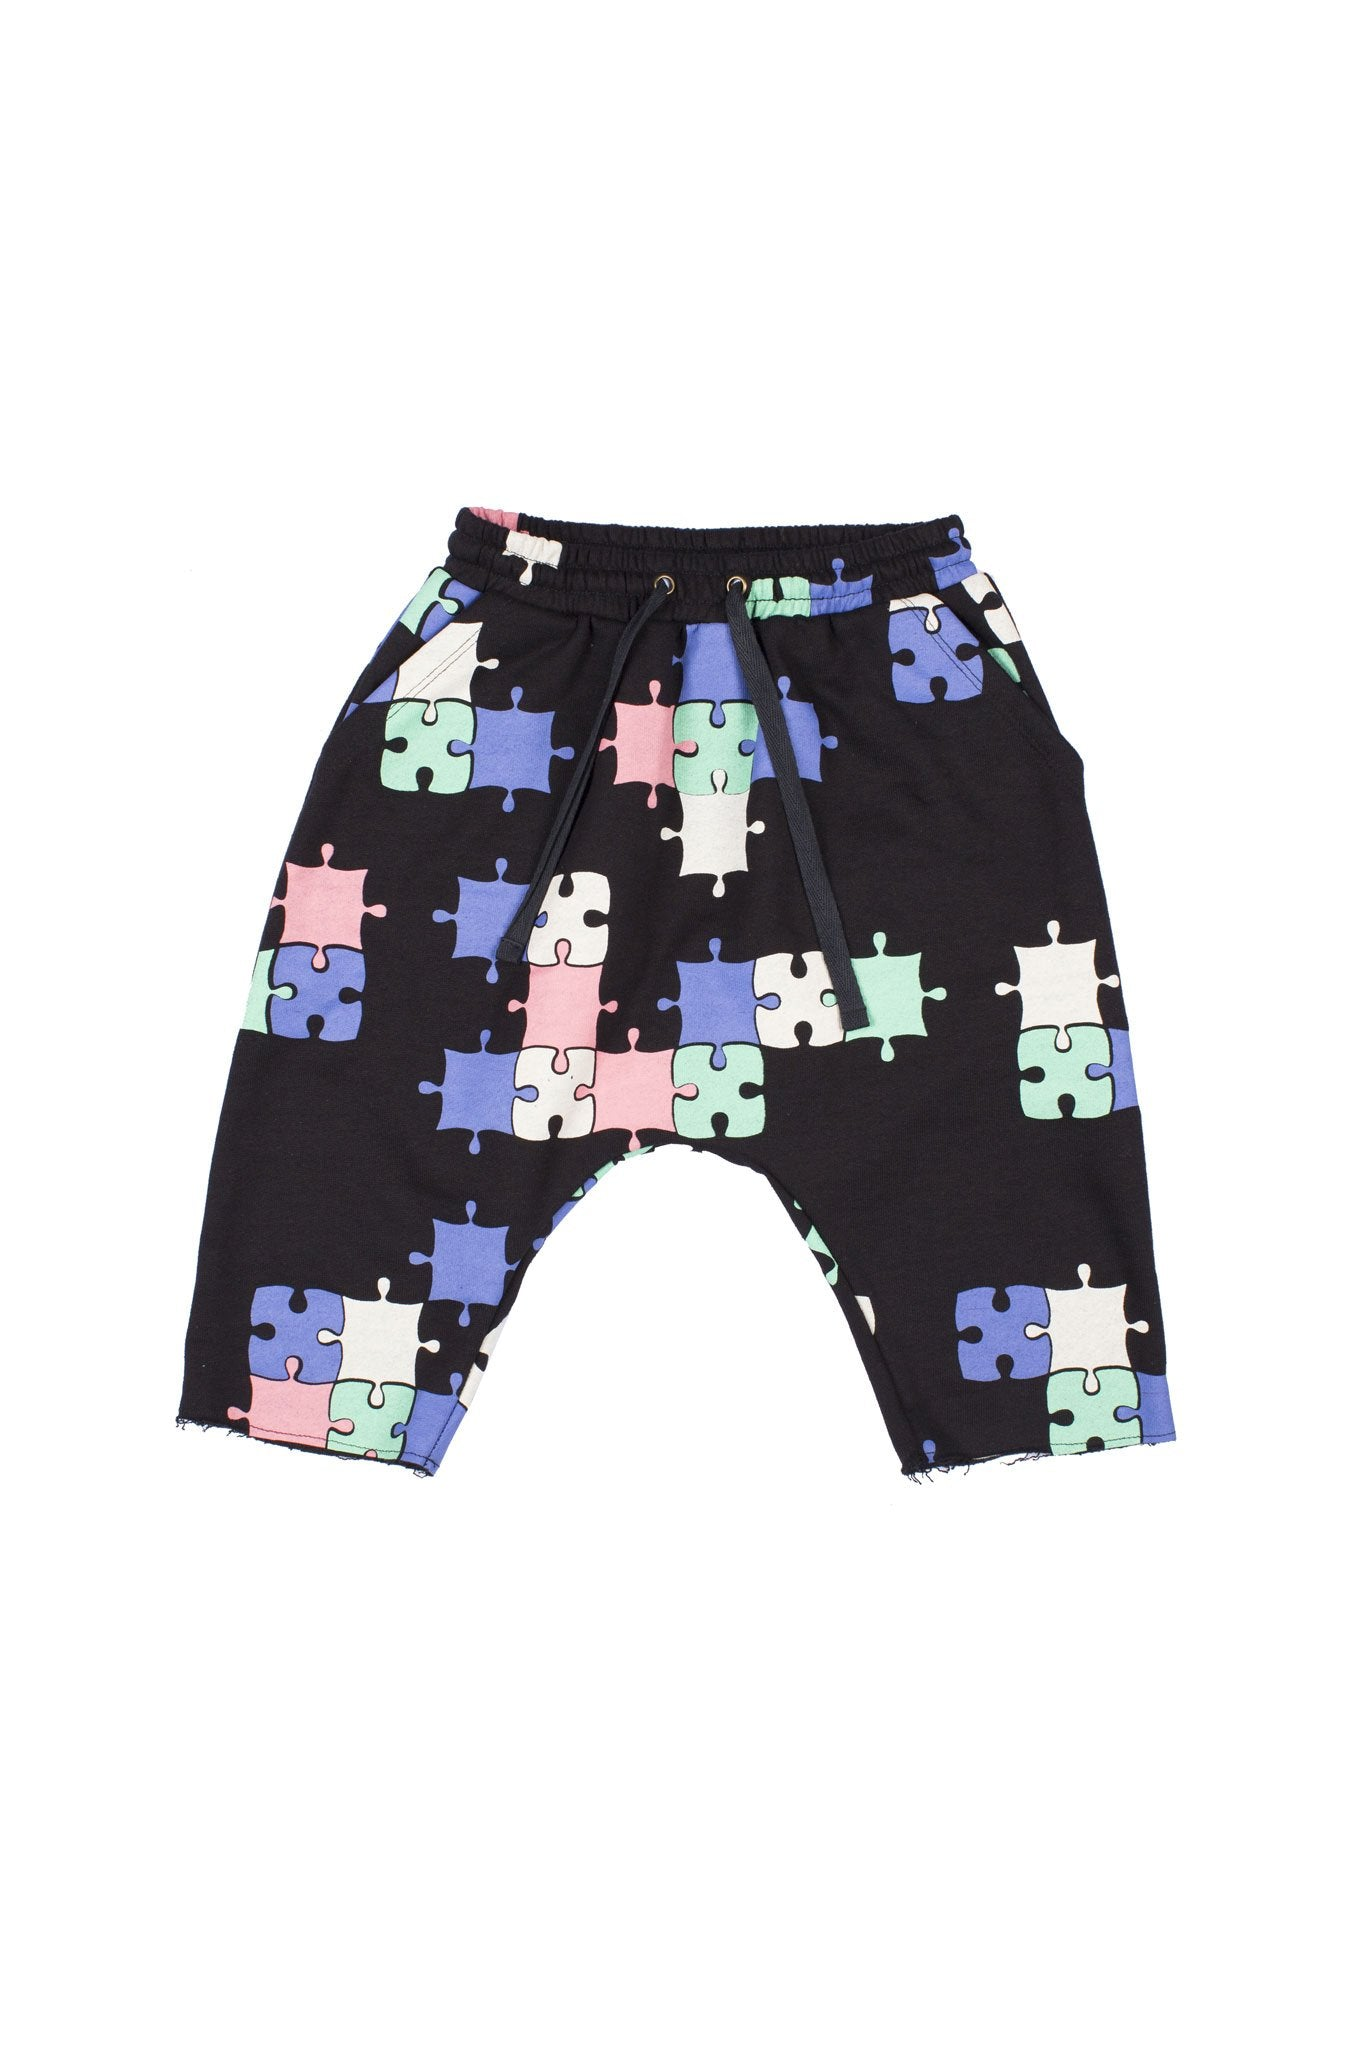 Puzzle Low Crotch Track Short by Zuttion | Sweet Threads